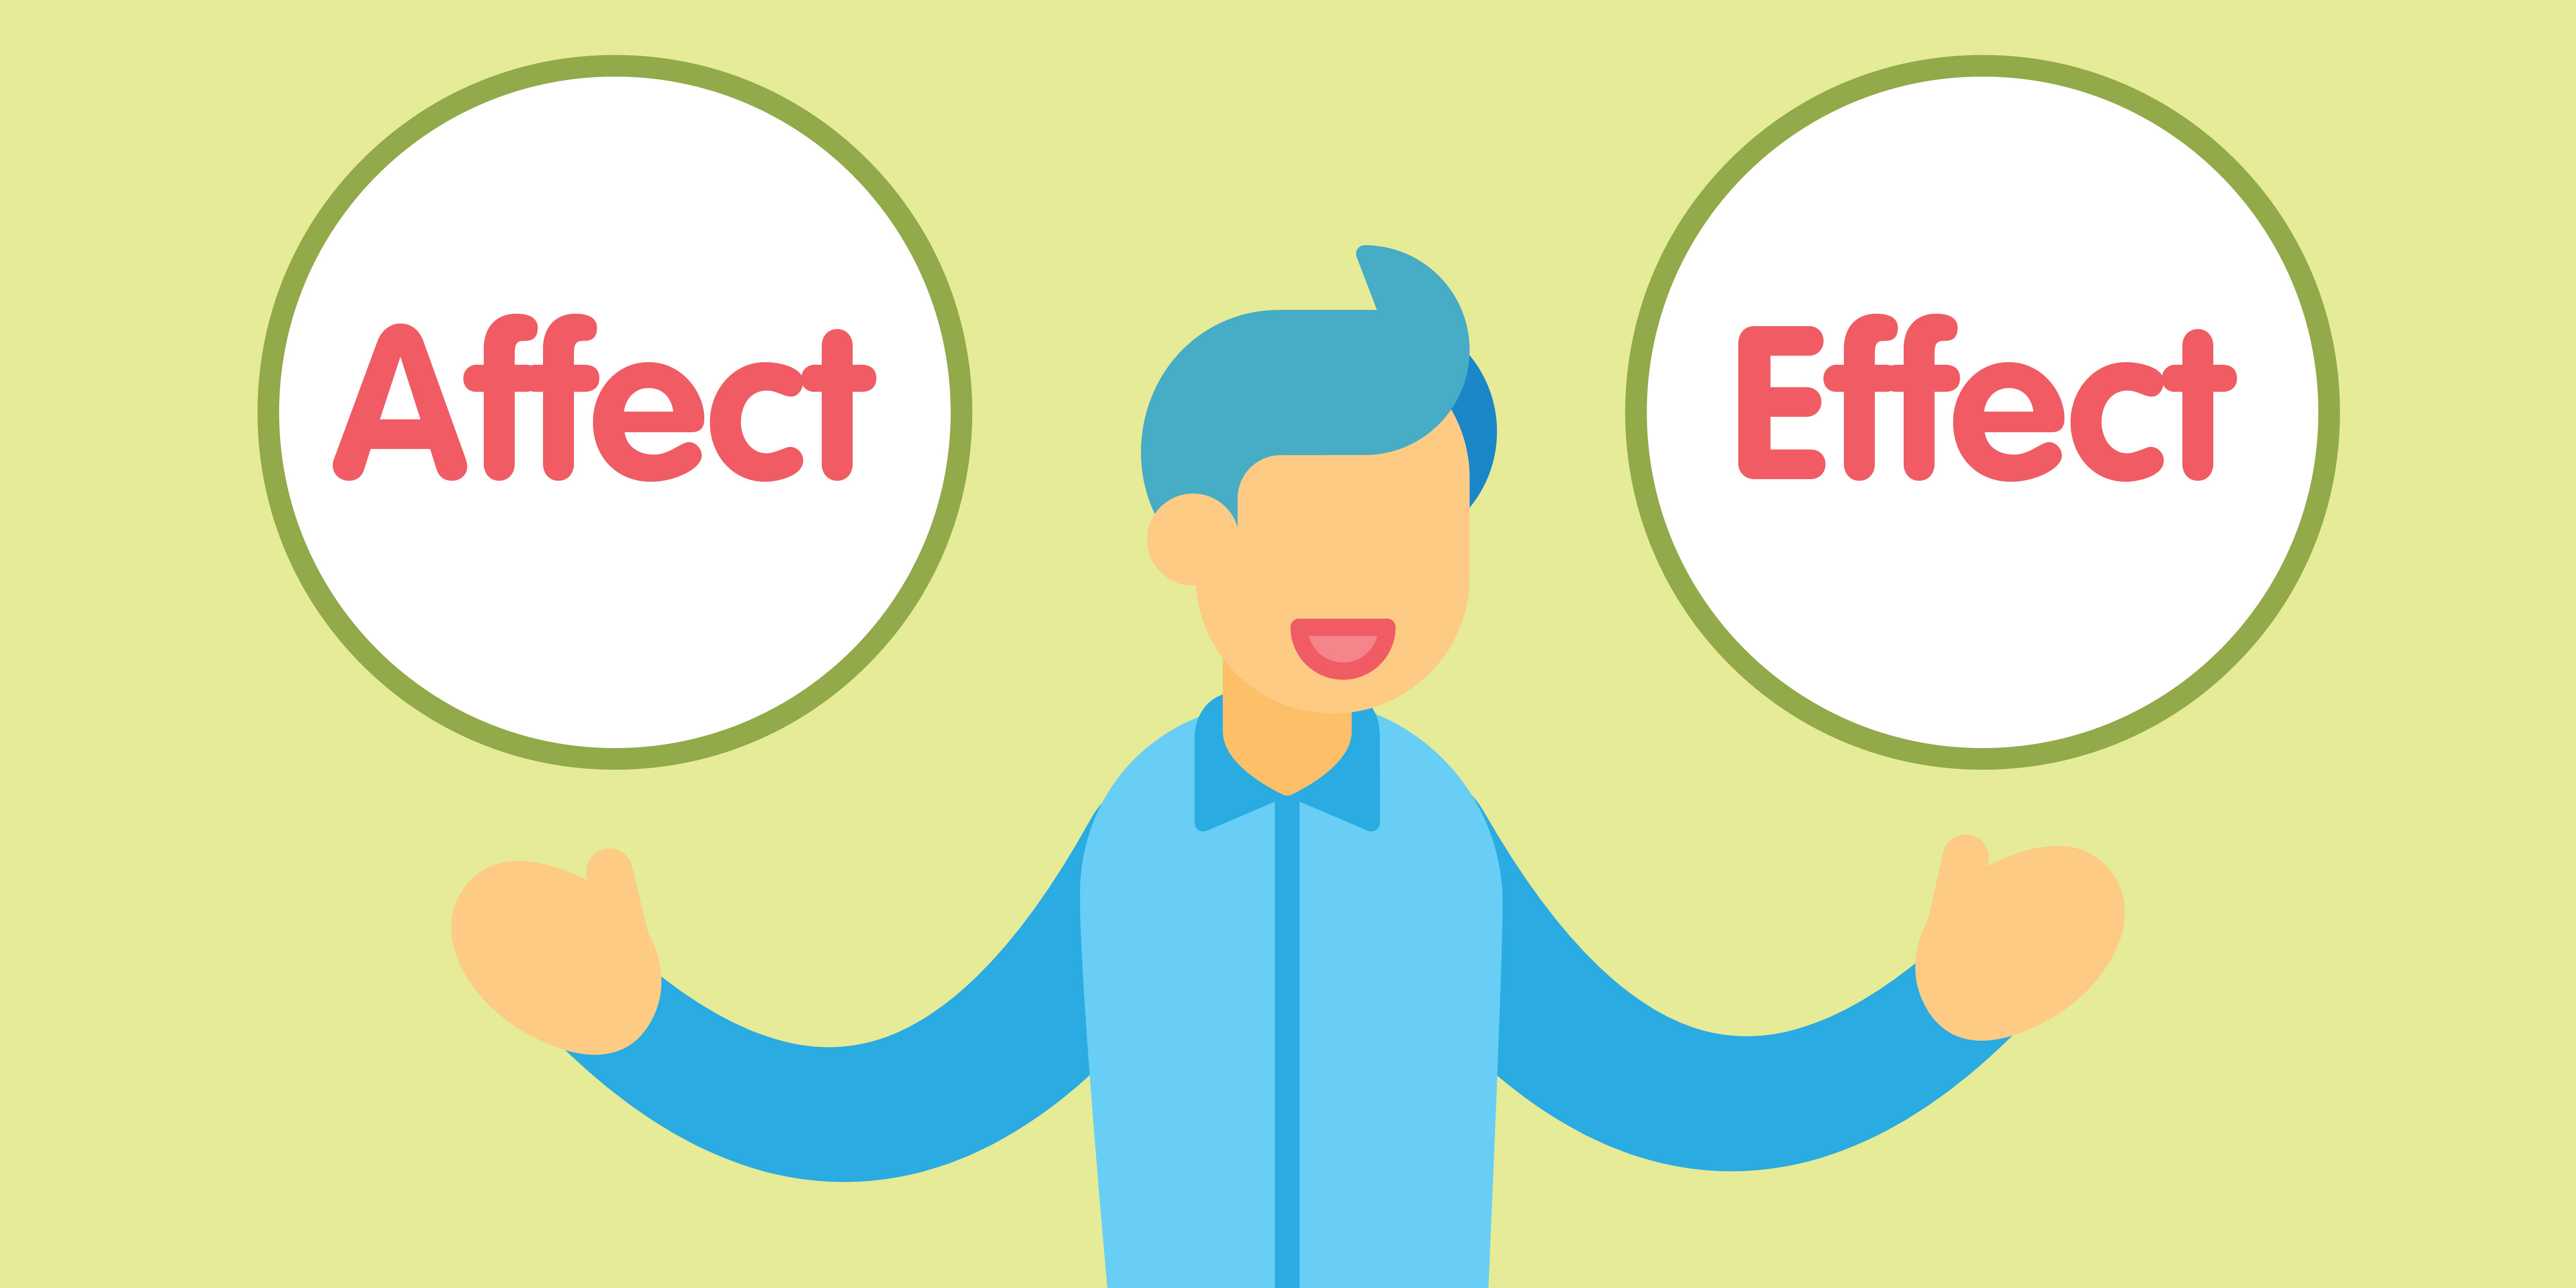 how effects affects us You will avoid confusion when using affect or effect if you remember this: the most common use of the word affect is as a verb meaning to change or influence something, and the most common use of the word effect is as a noun that is the change or result that is brought about.